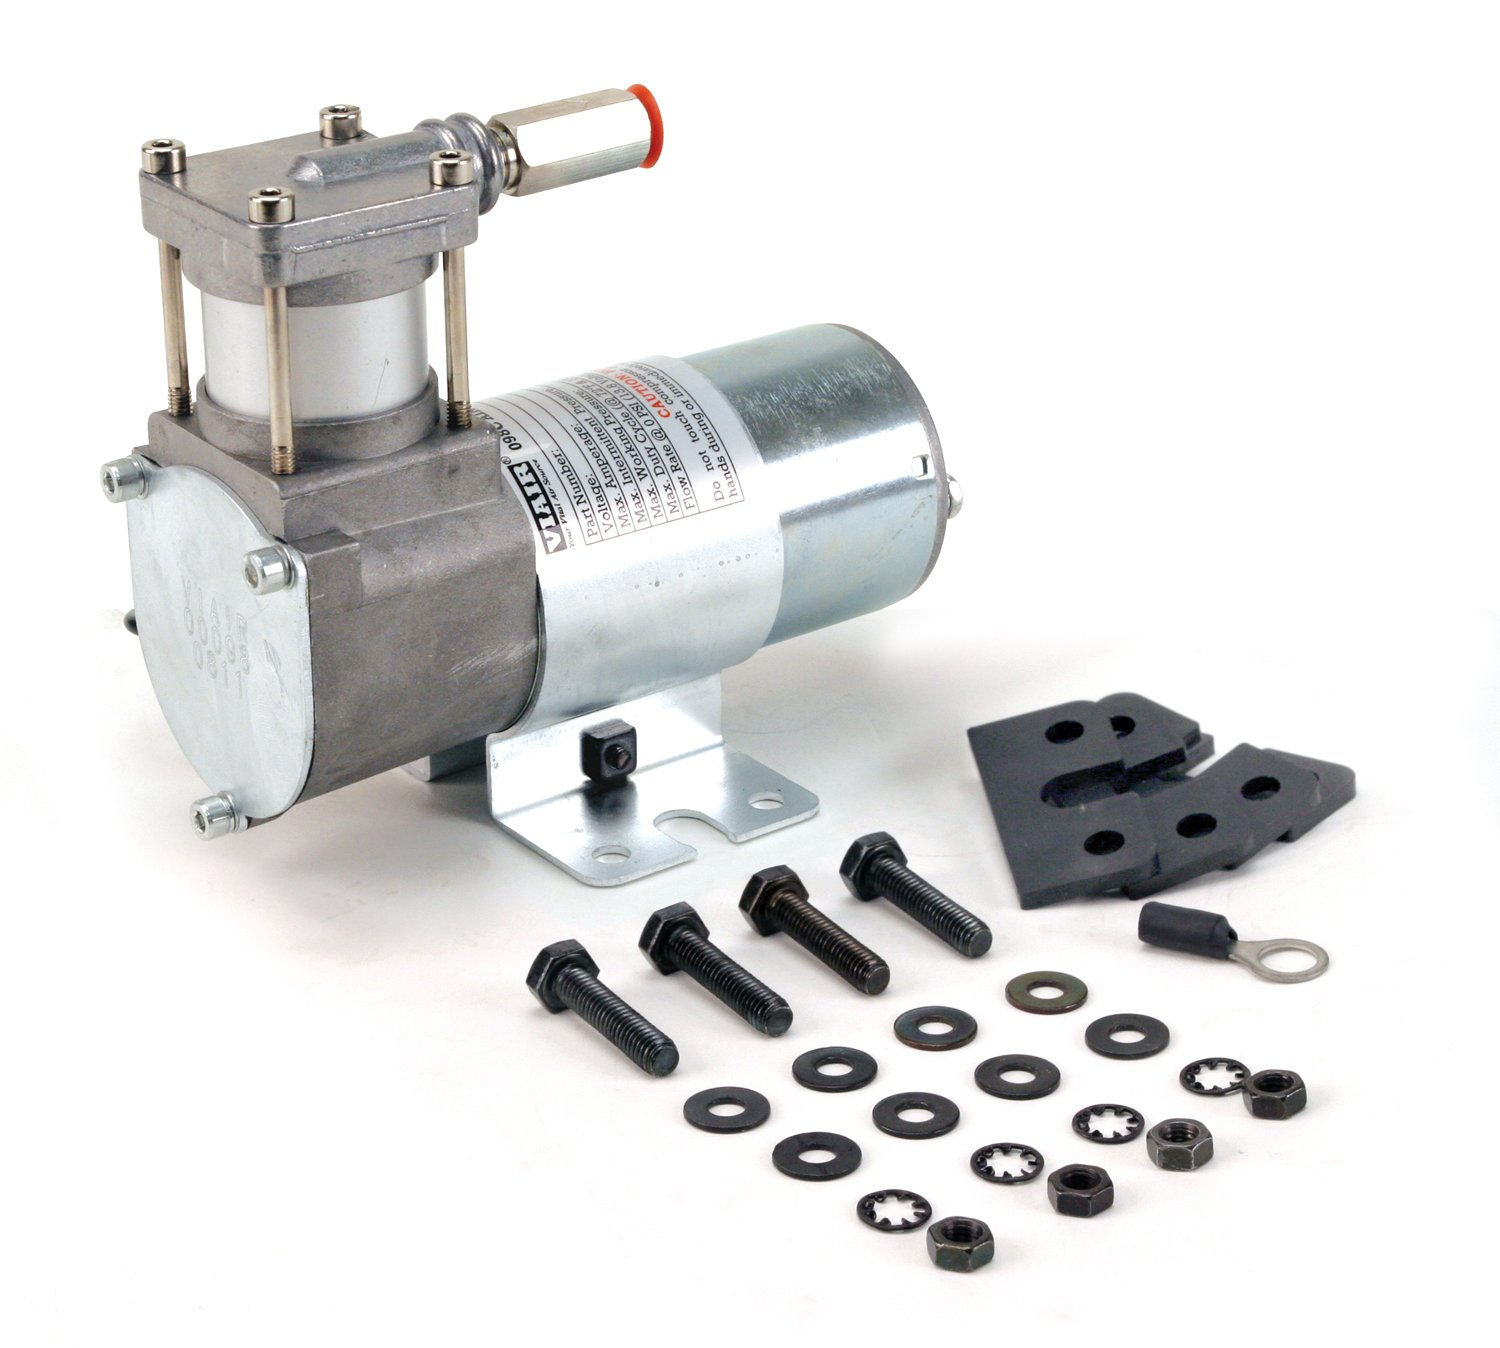 Viair 98 Compressor Kit